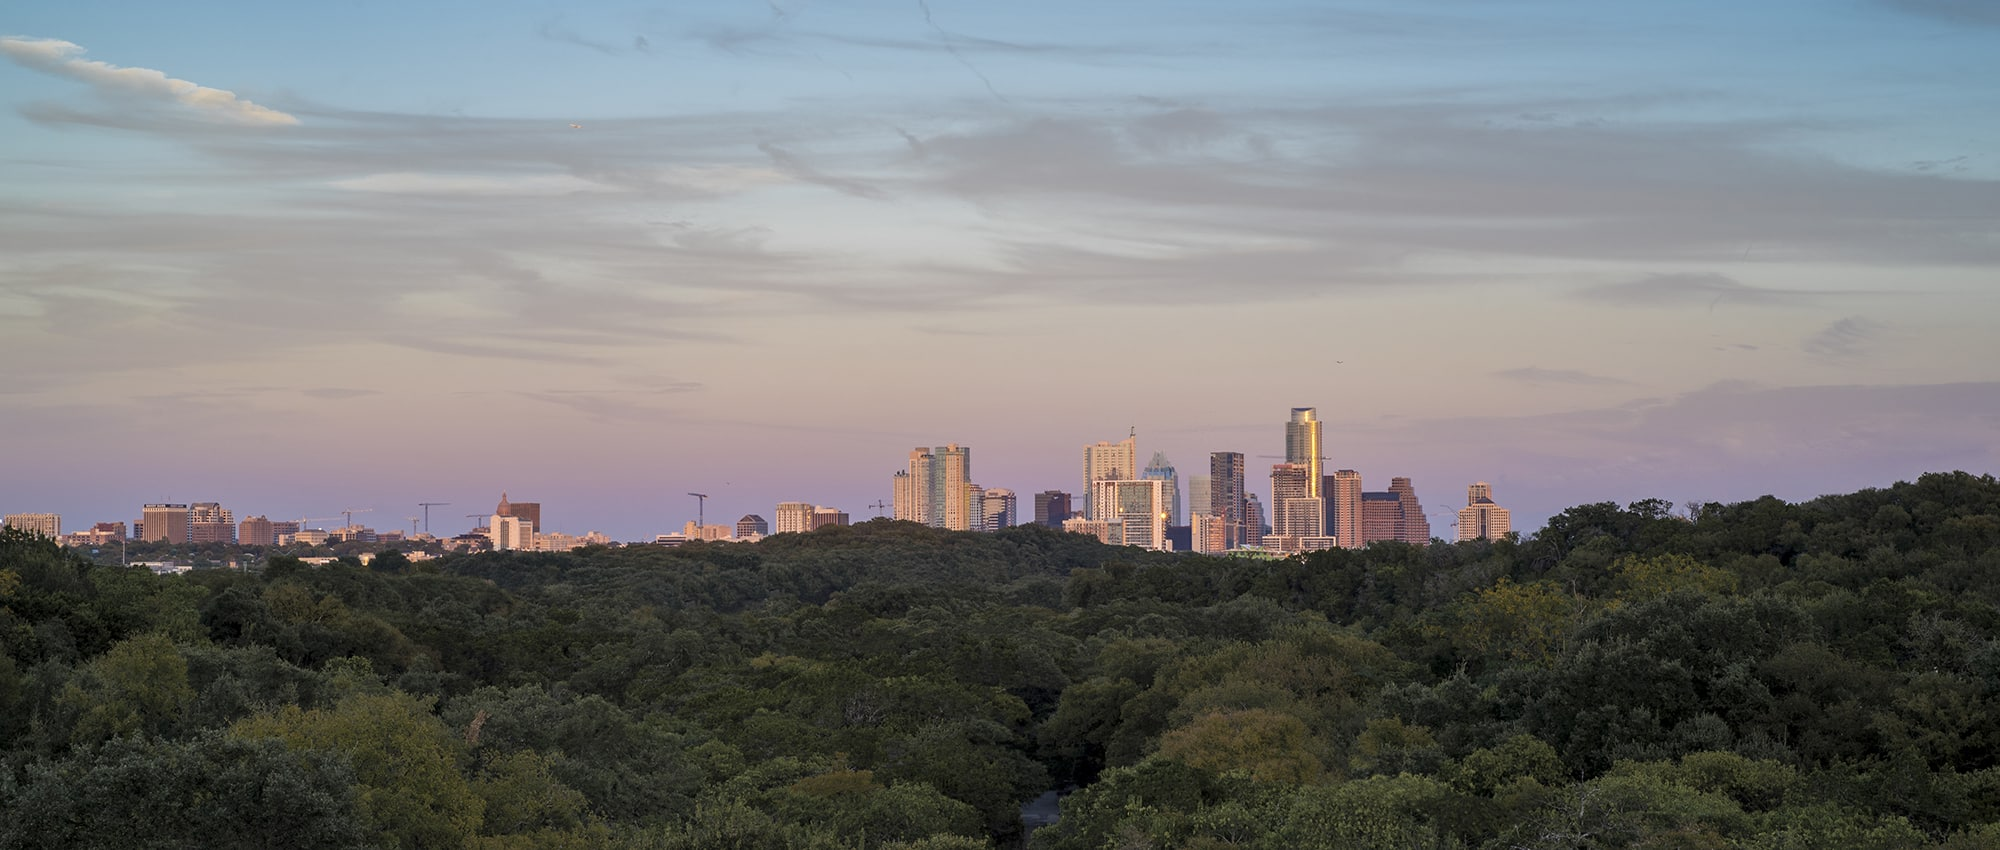 Sublease: Rollingwood Town Center Downtown View   2500 Bee Caves Rd. in Austin, TX